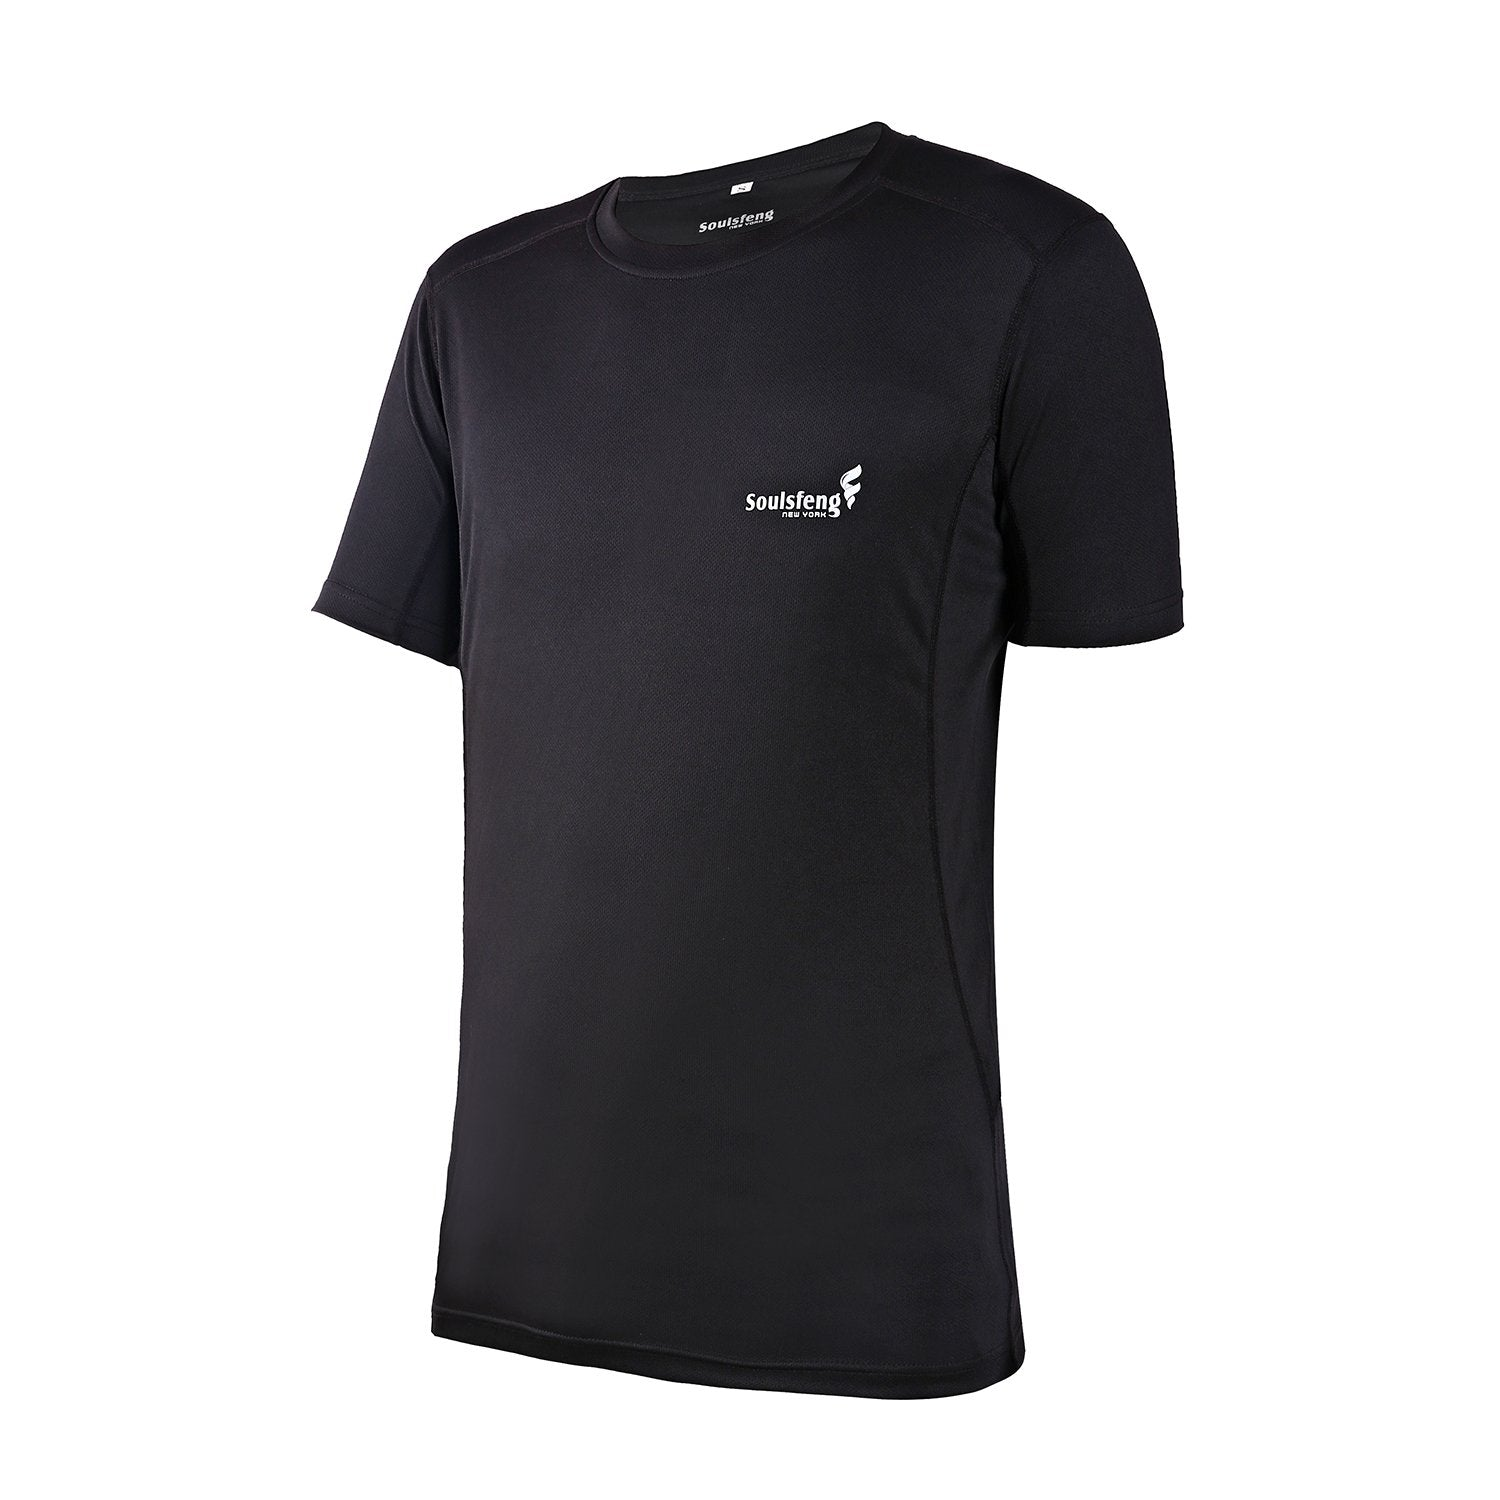 Soulsfeng OG Quick Dry Shirt Men